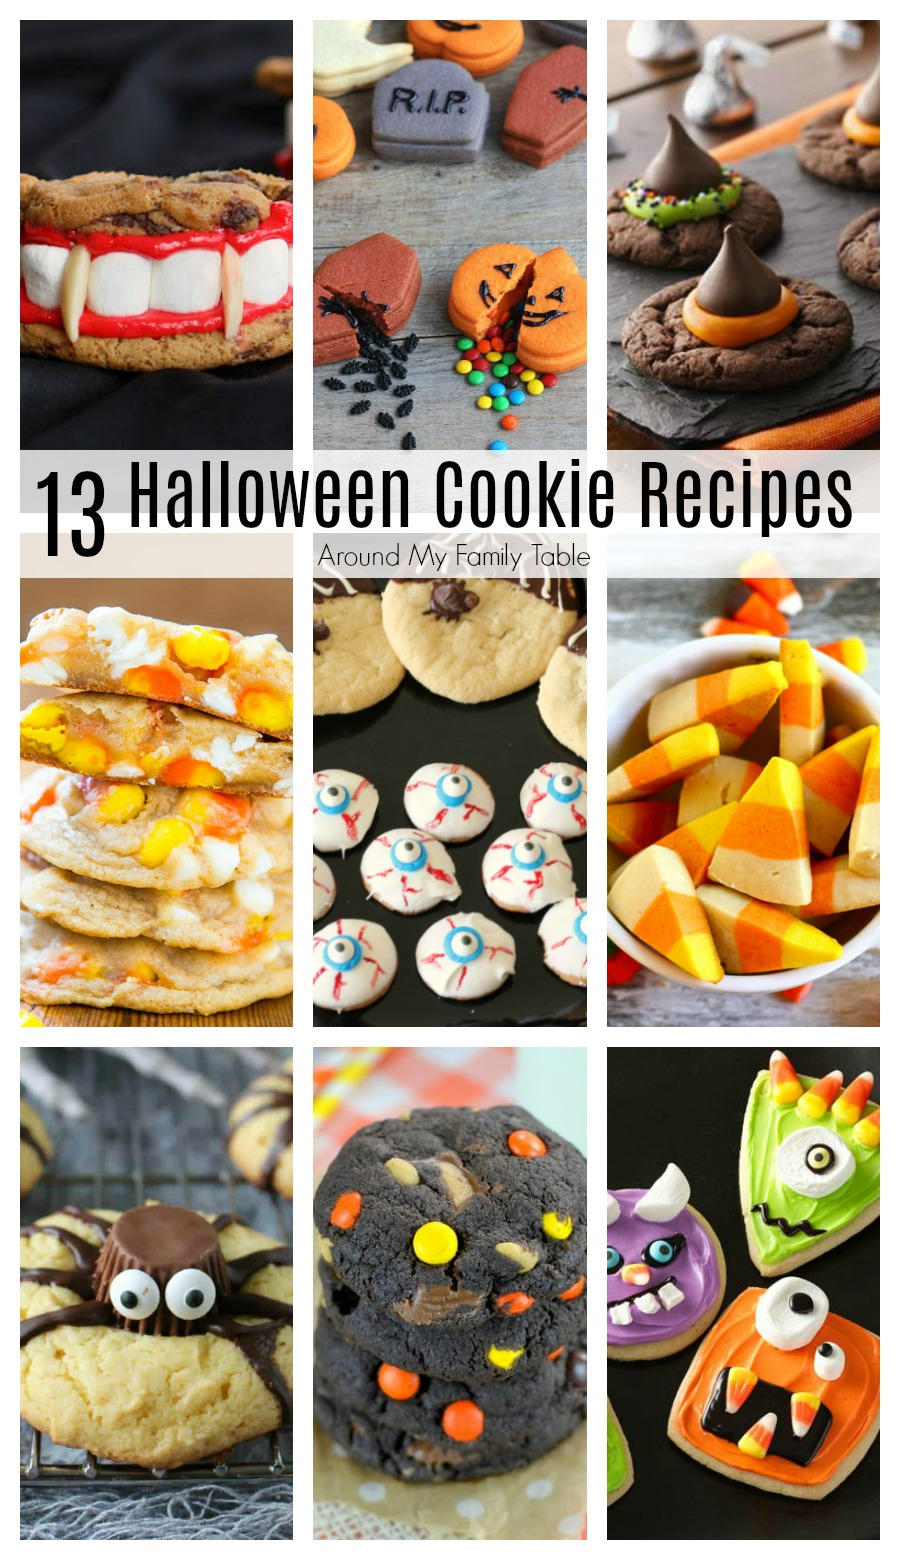 These are the perfect Halloween Cookie Recipes for your October parties and get togethers!